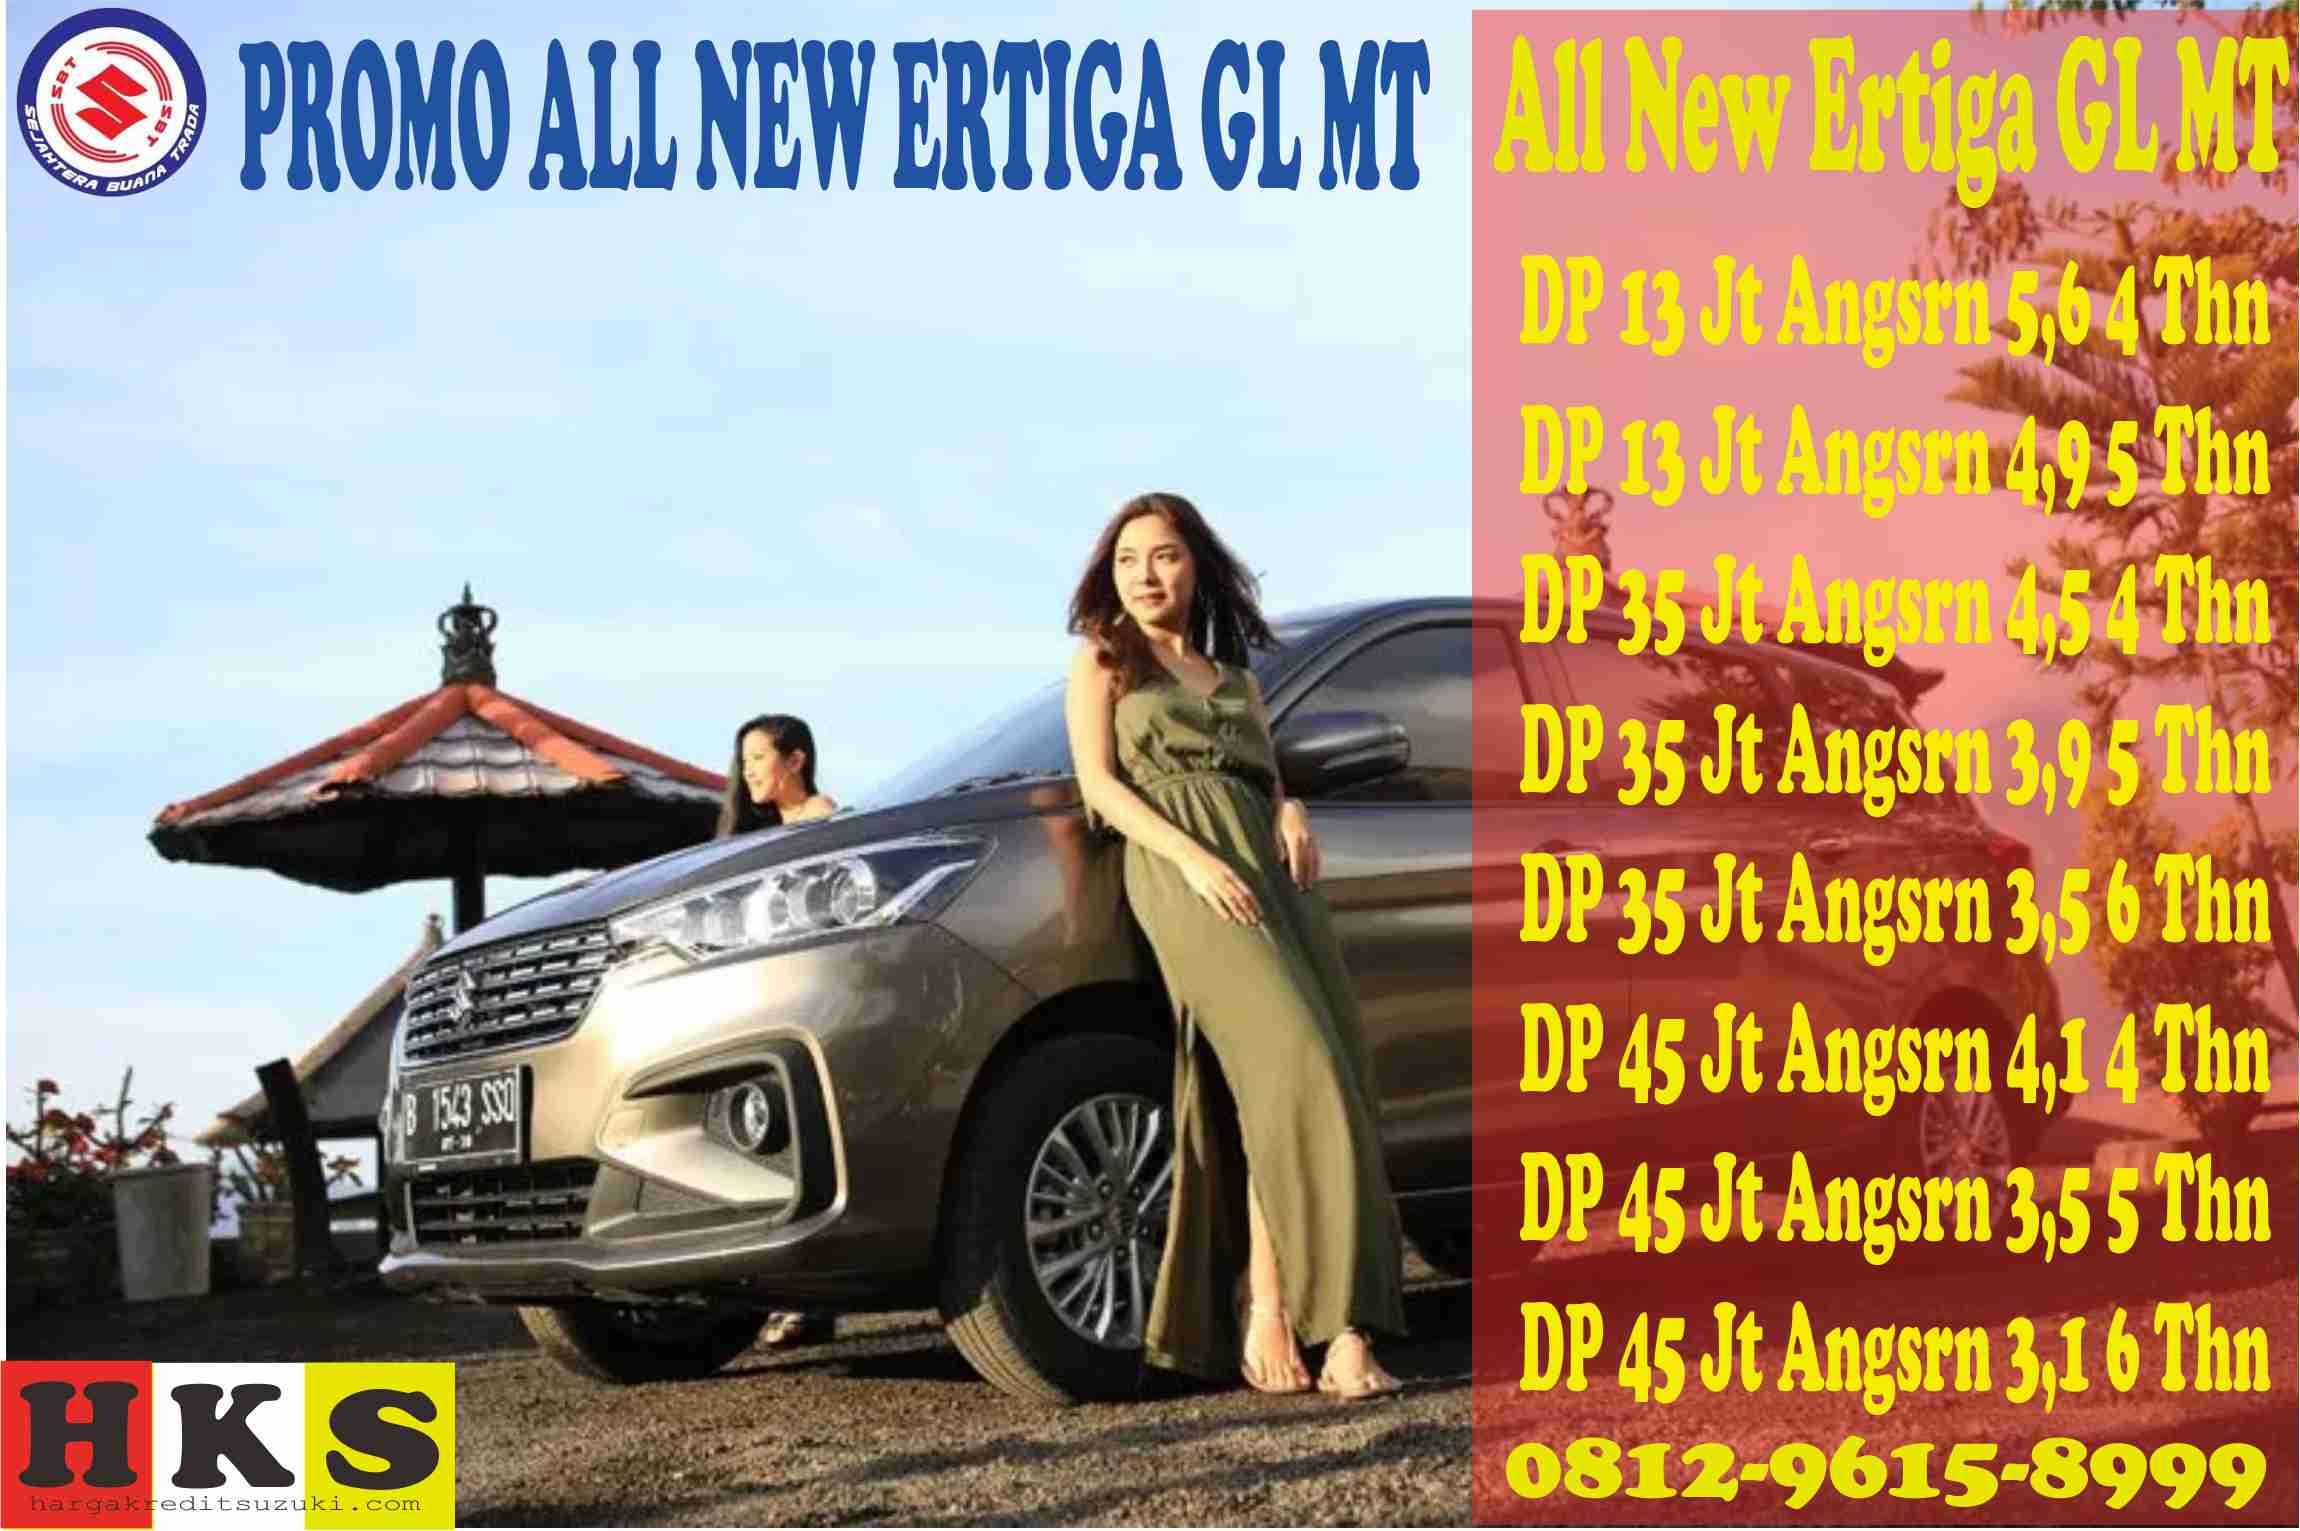 PROMO ALL NEW ERTIGA GL MT